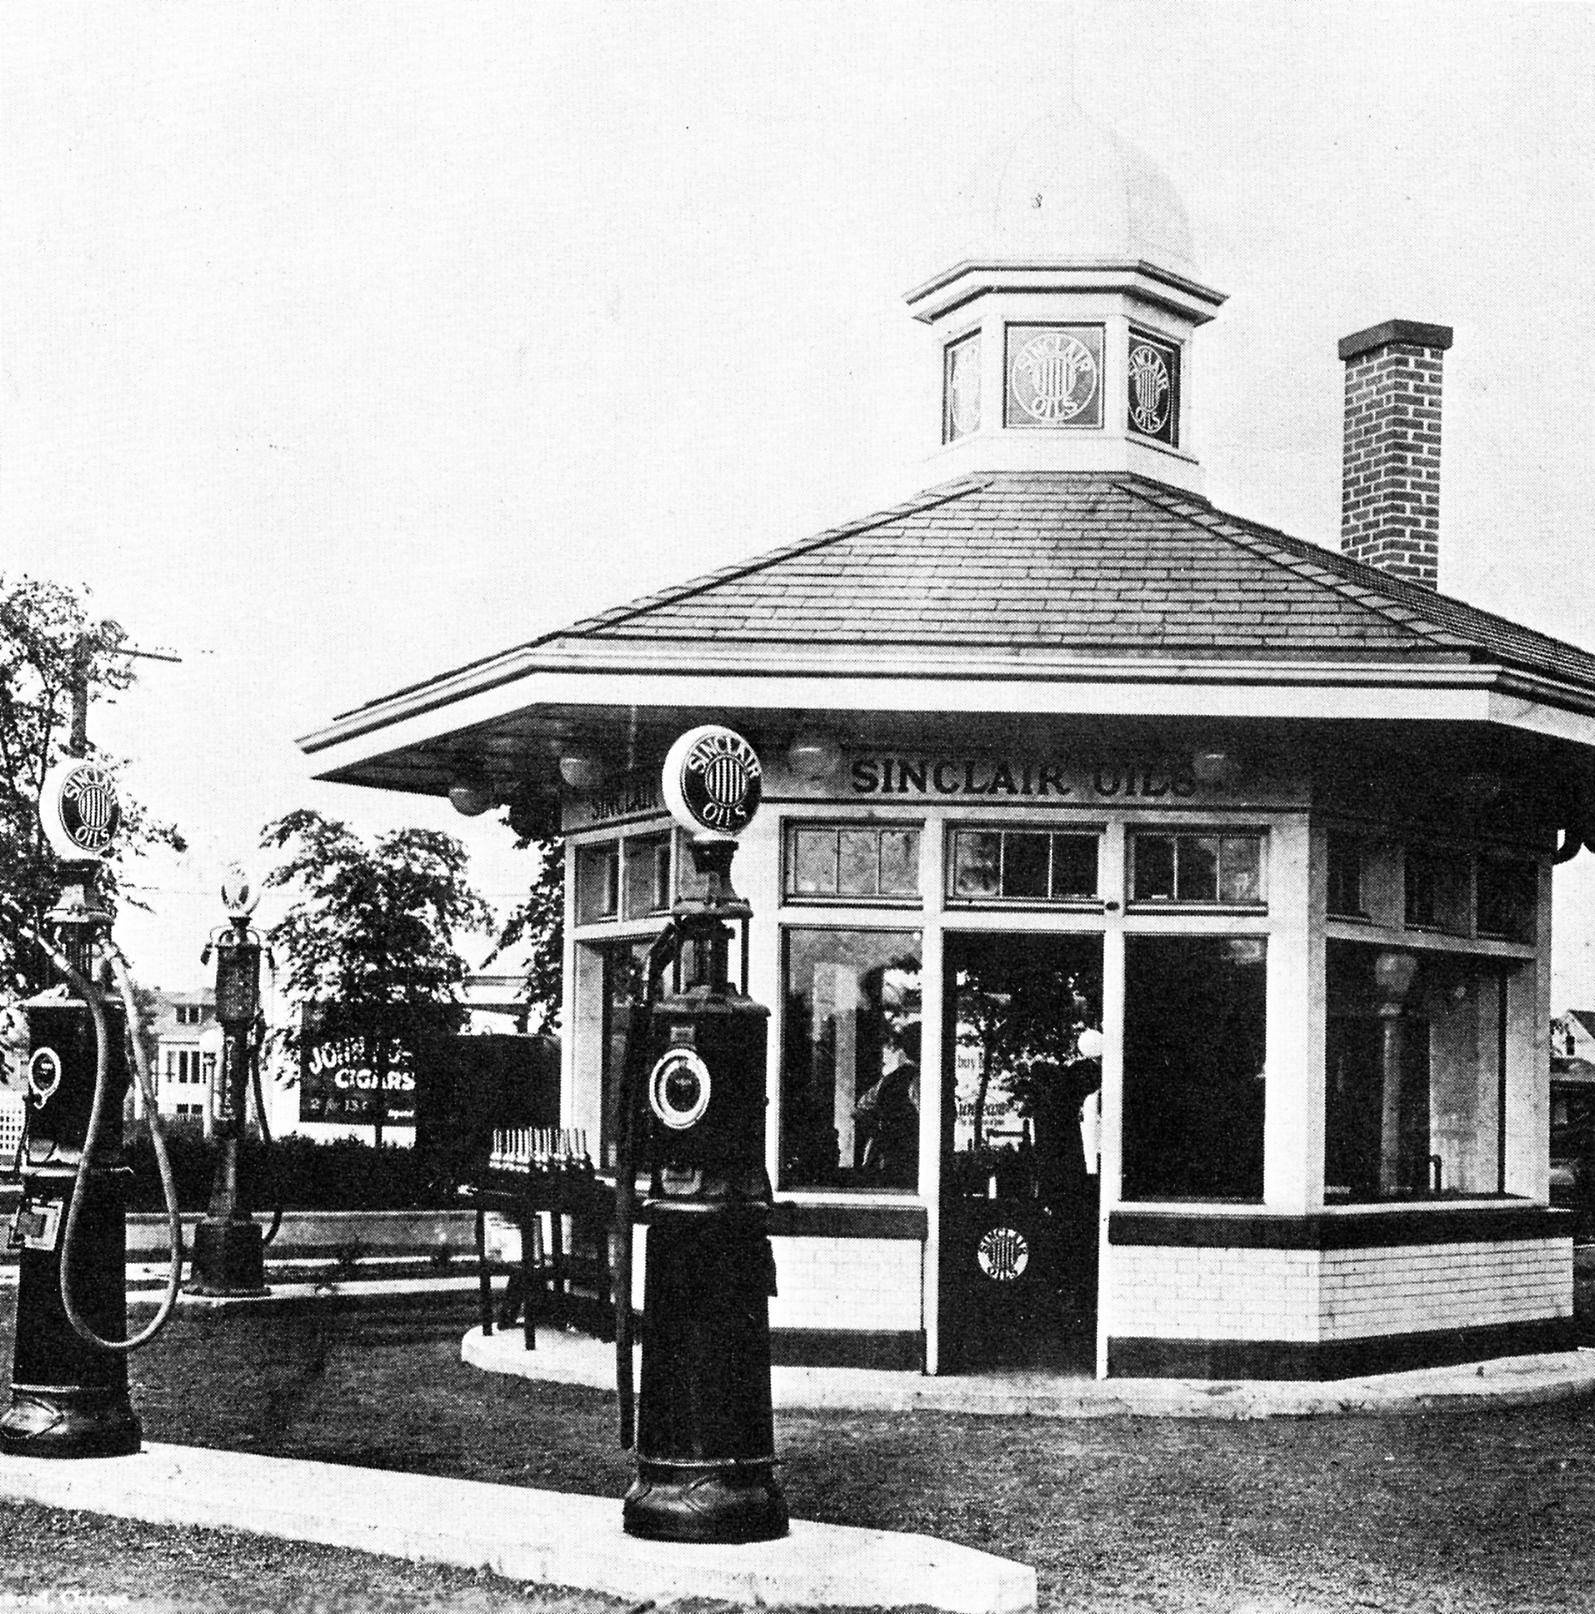 1910s sinclair station